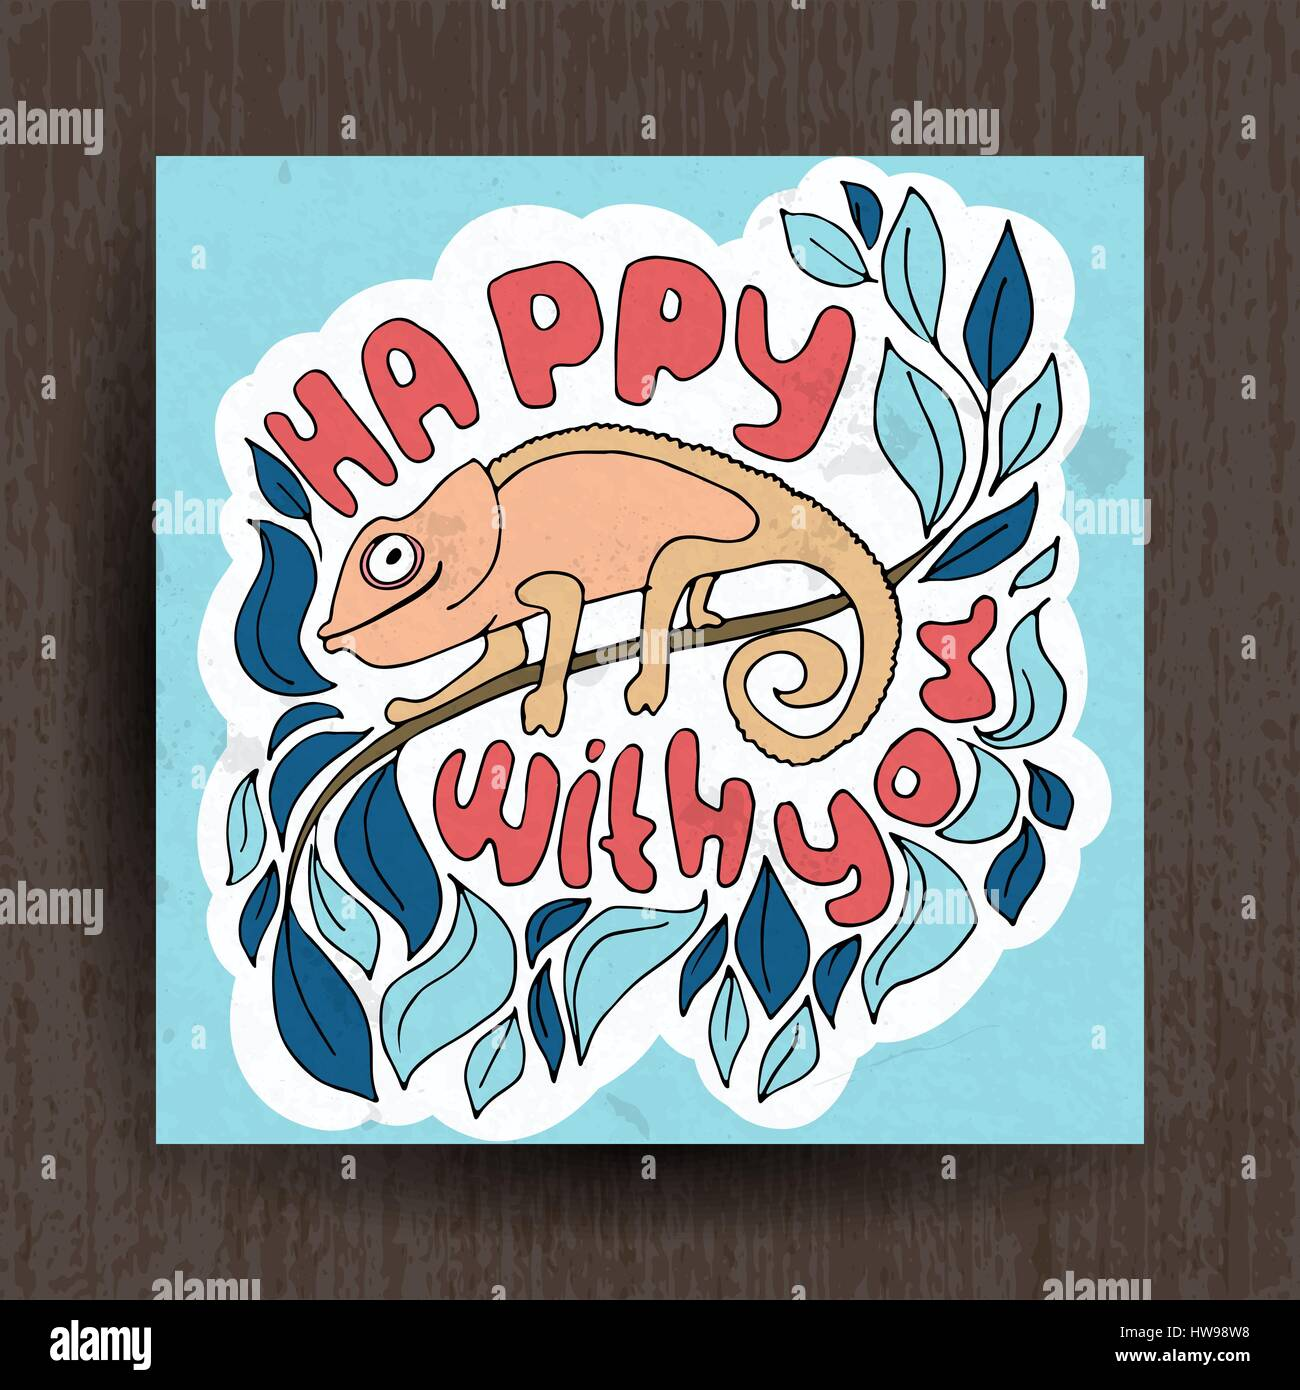 Happy with you illustration - greetings card cute animals - Stock Vector